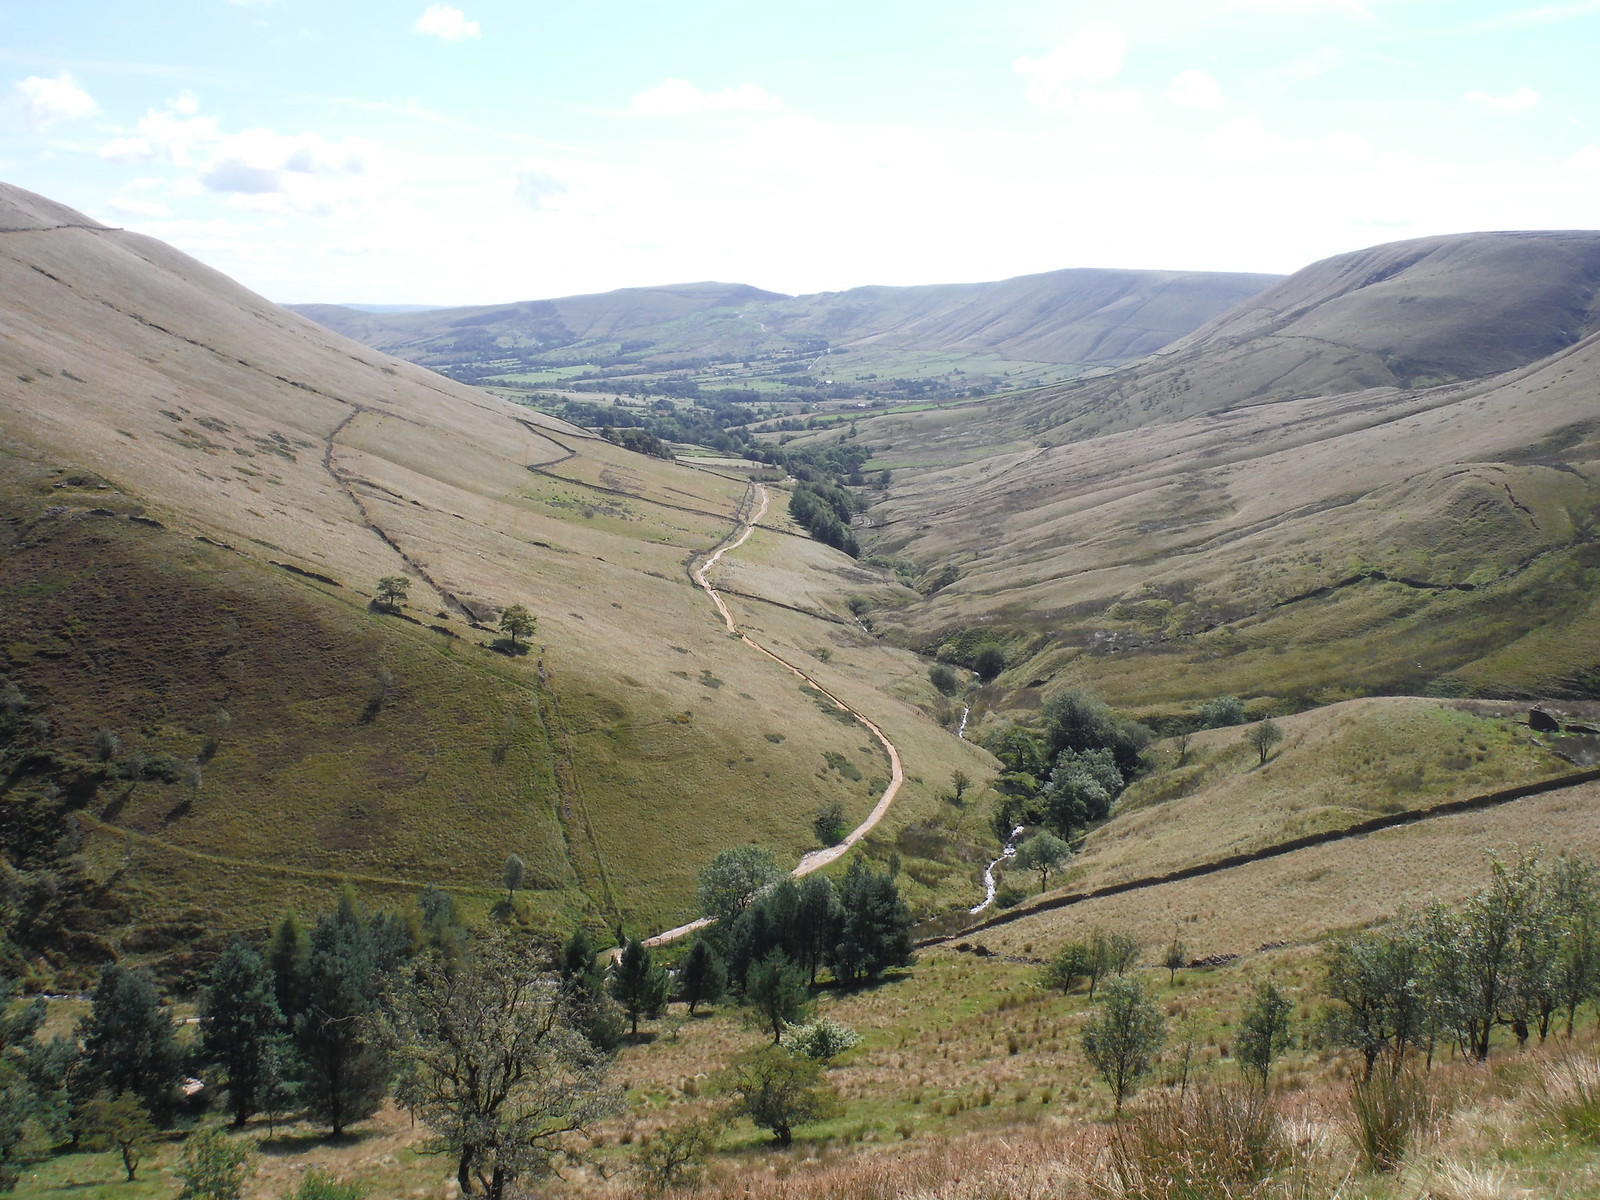 Vale of Edale, from Top of Jacob's Ladder SWC Walk 303 - Edale Circular (via Kinder Scout and Mam Tor)